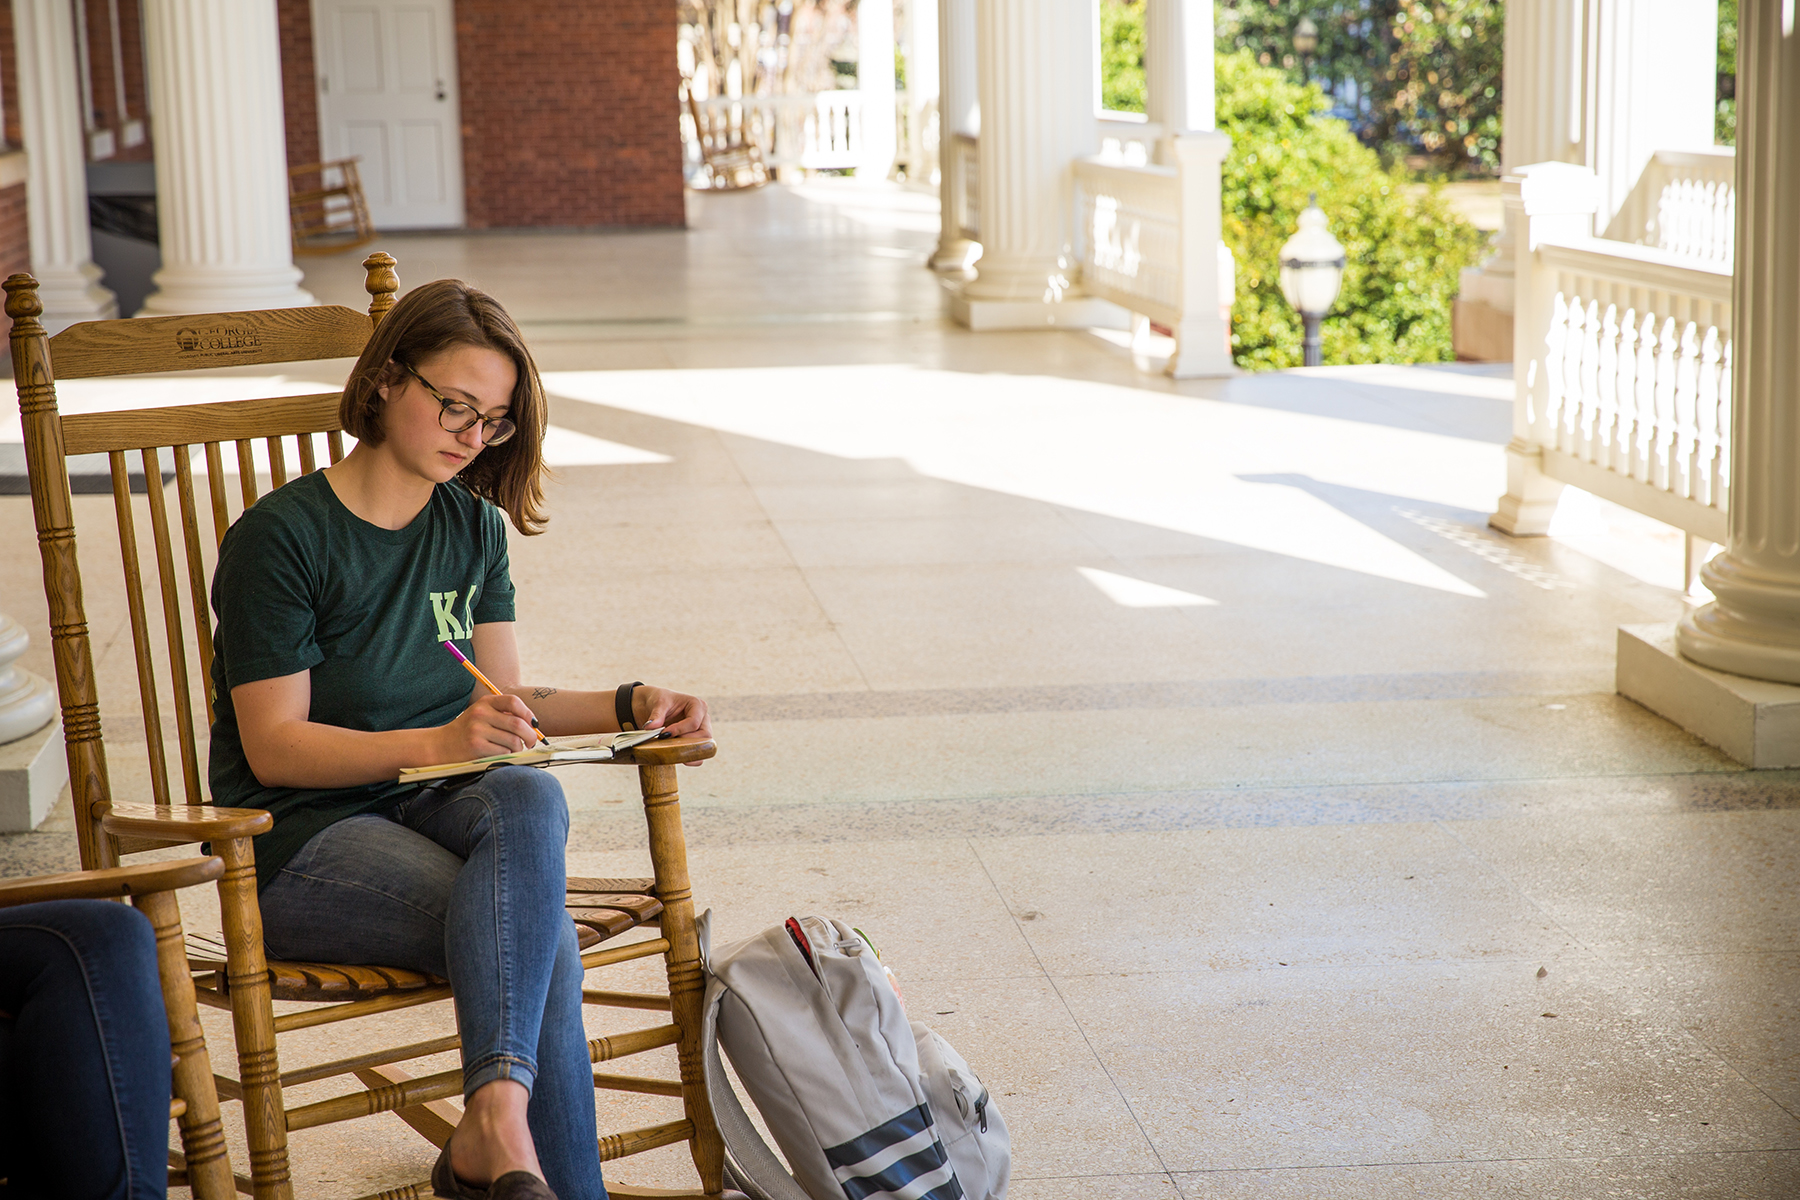 a college-aged girl sitting in a rocking chair on a porch, journaling